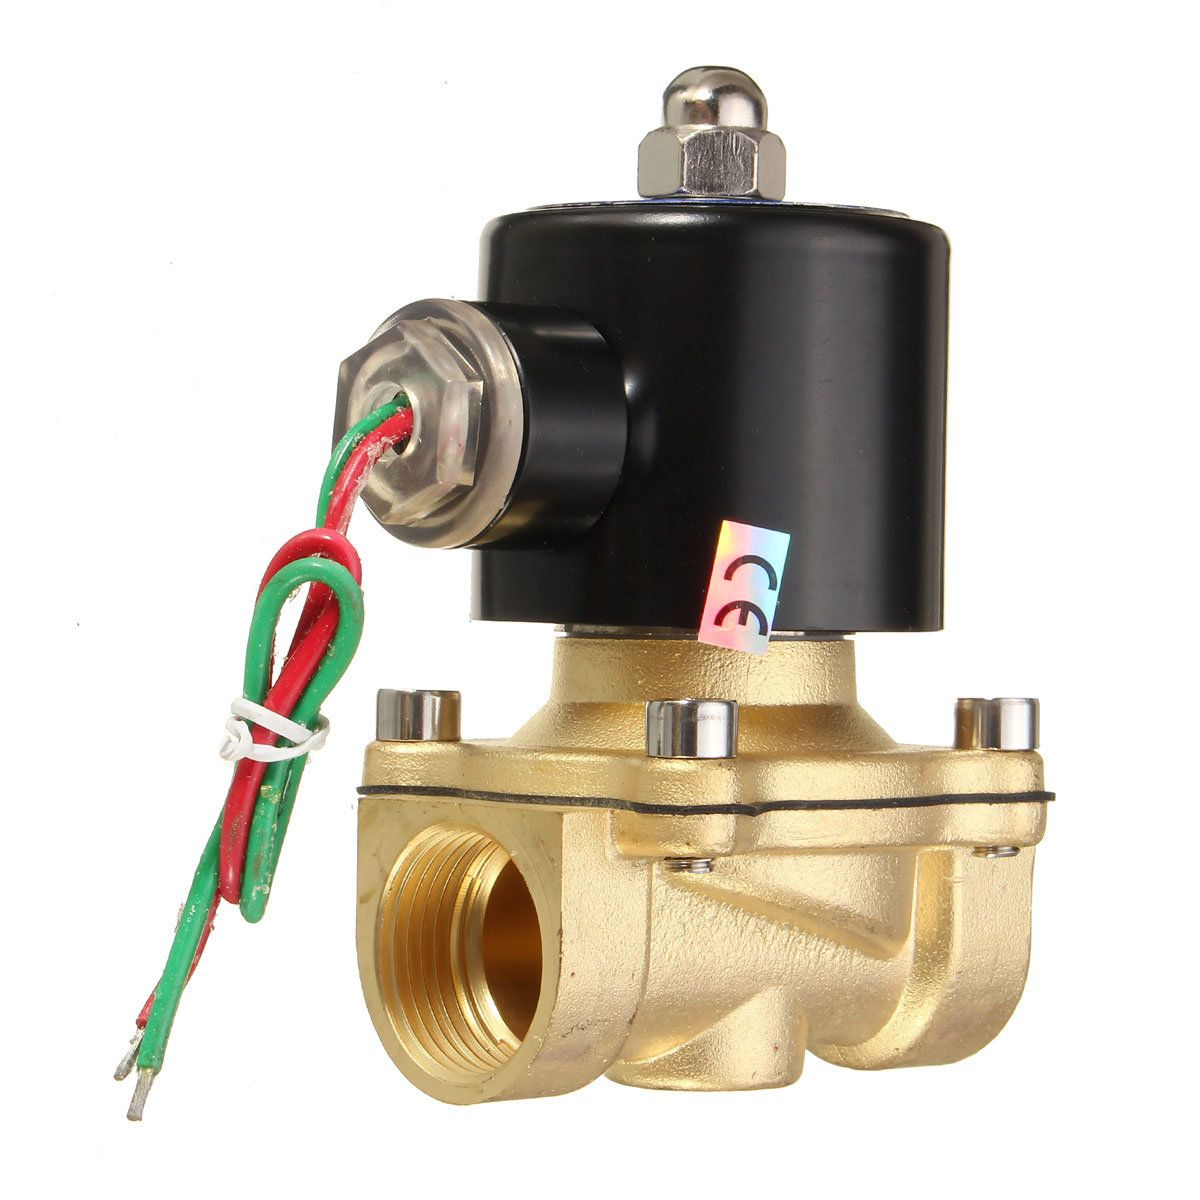 Electric Solenoid Valve Water Air N C 2 Way 1 4 Ac 220v 2w025 08 Brass Body Dc12v 24v Ac110v 220v Brass Water Valve Water Valves Electricity Brass